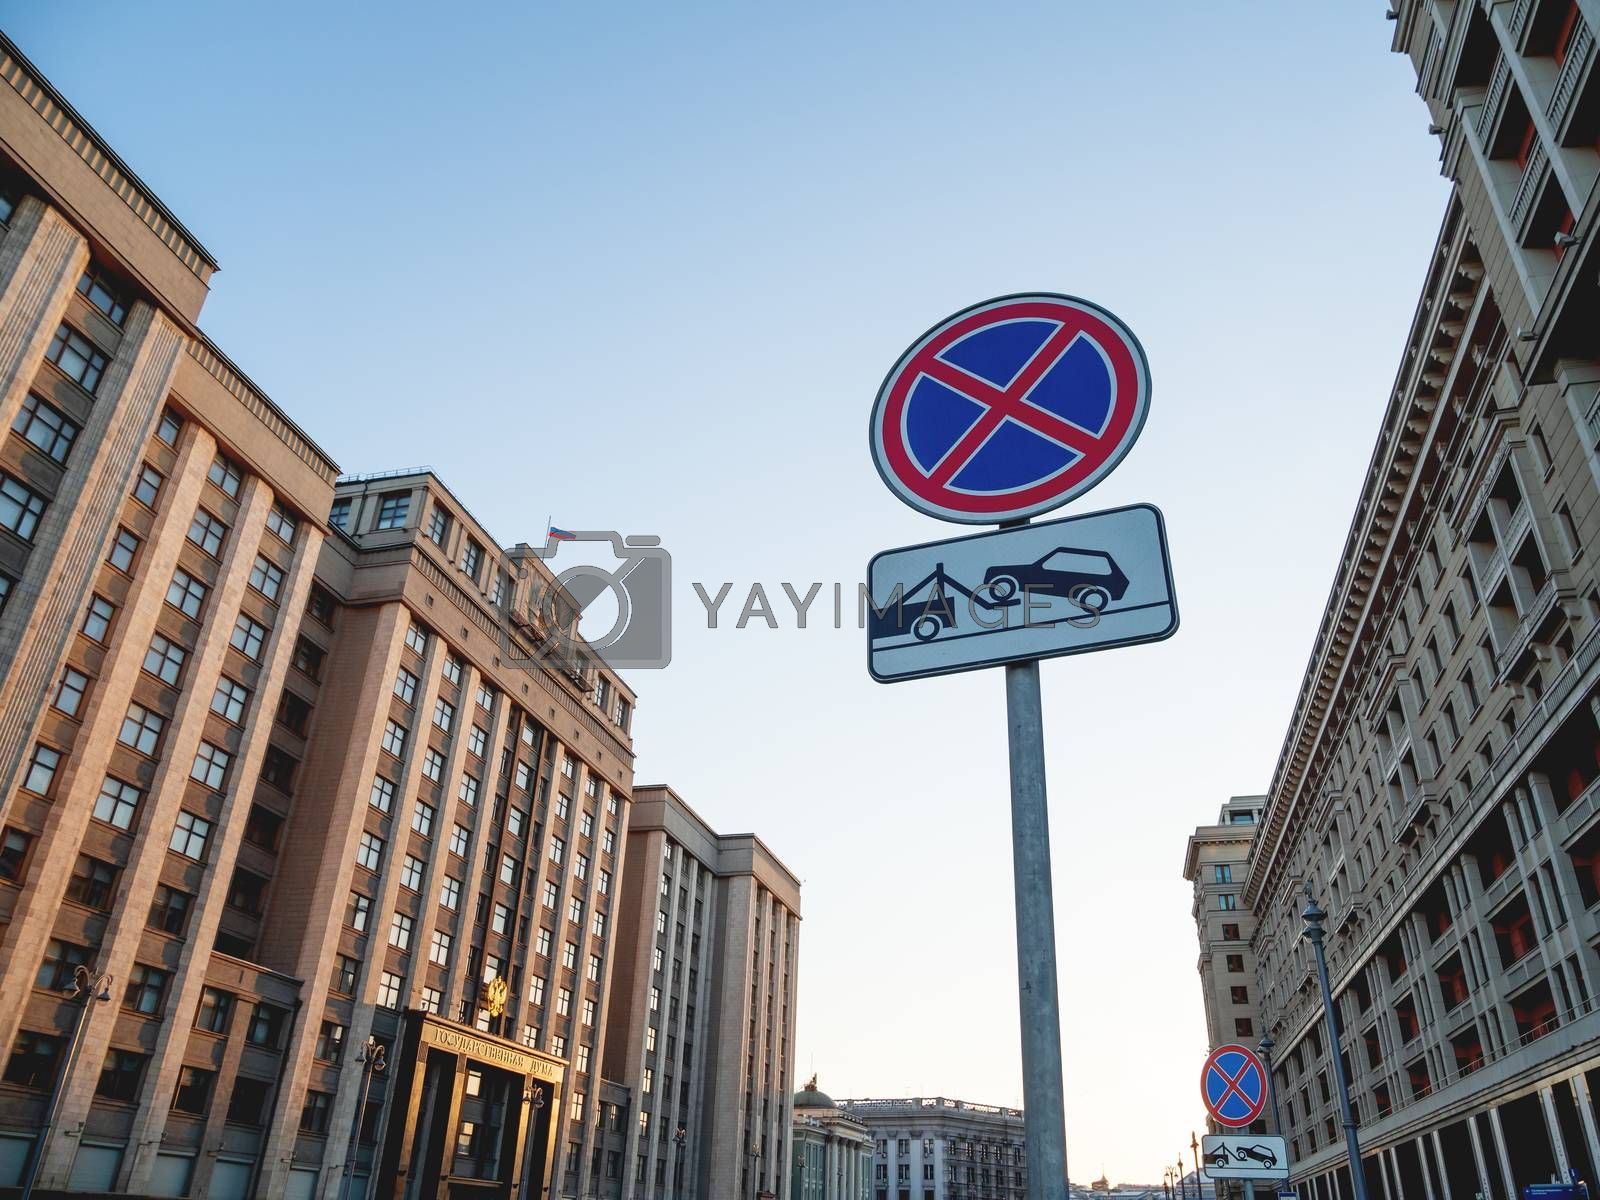 Building of State Duma of Russia inscribed - State Parliament Deserted Okhotny Ryad street. Moscow, Russia.